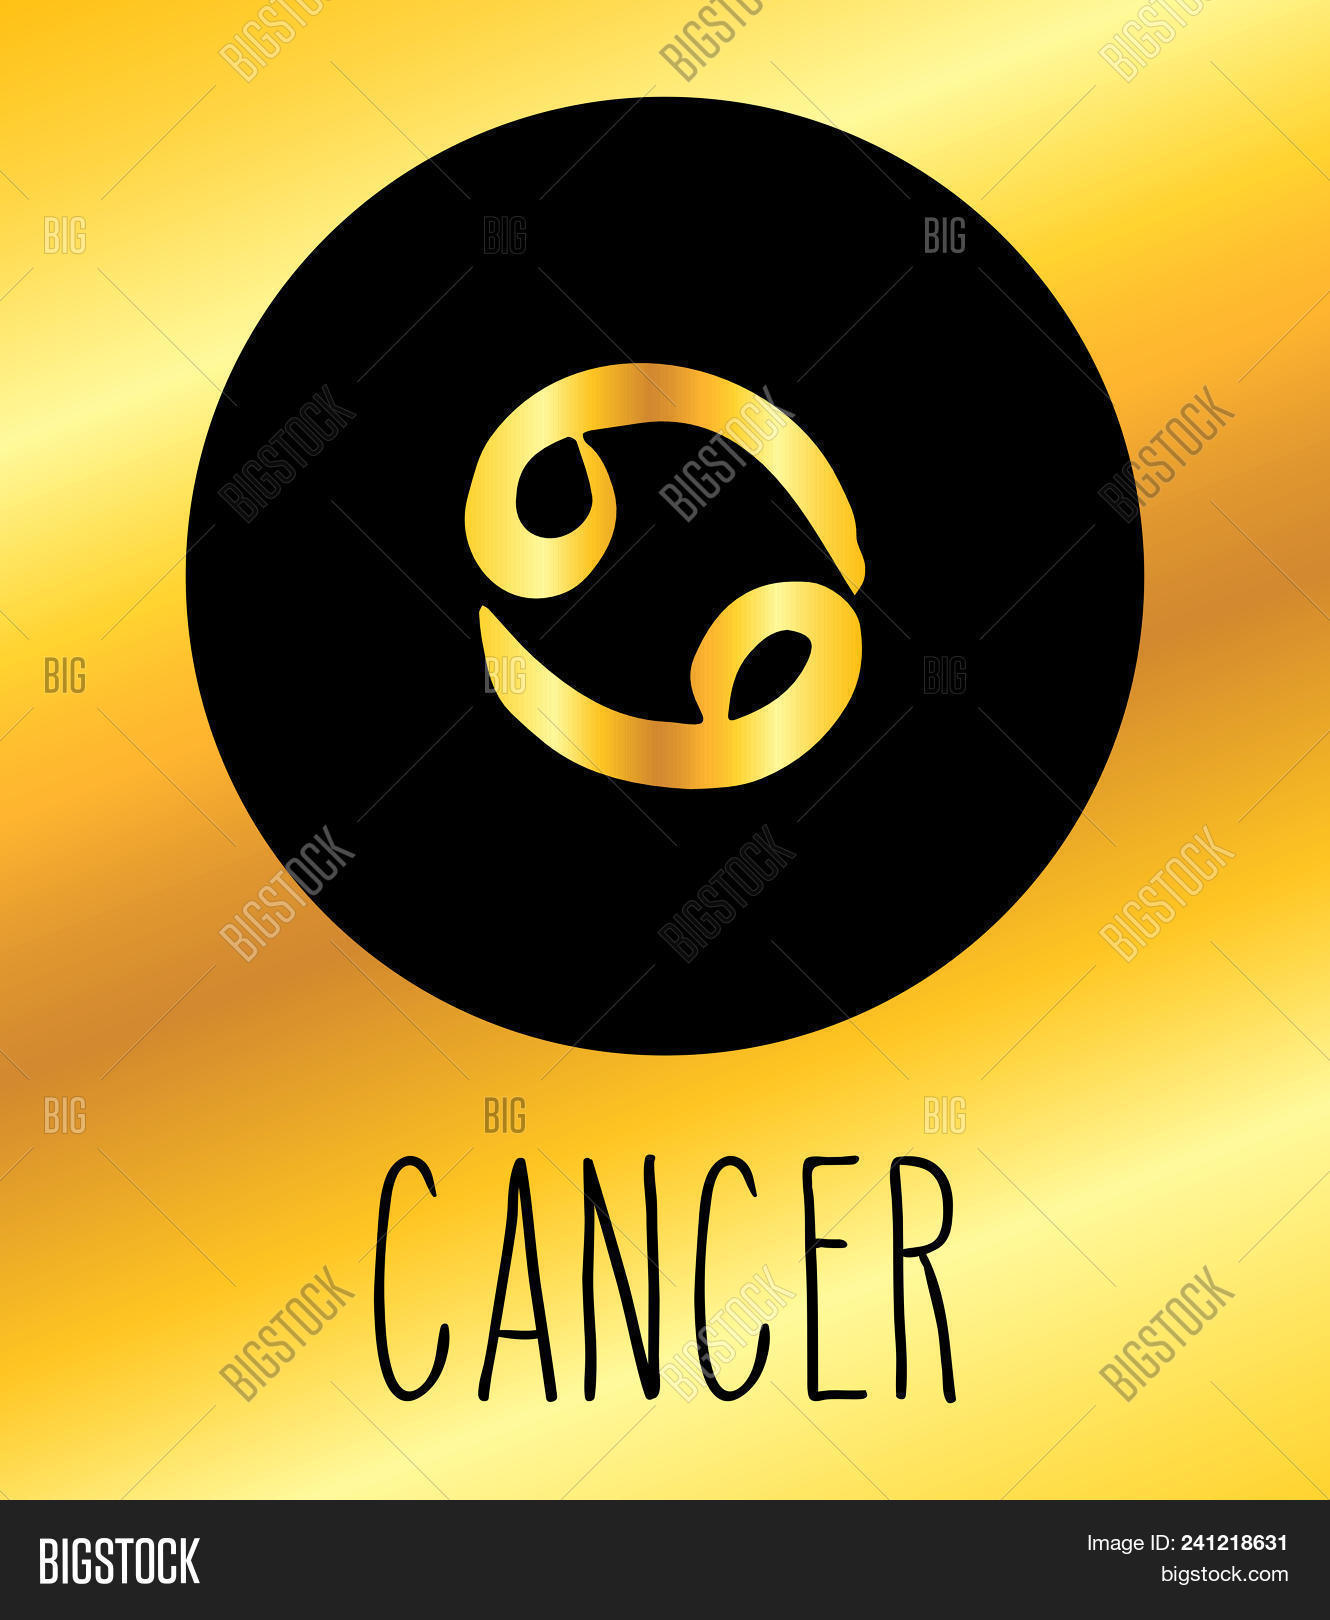 Cancer Hand Drawn Vector Photo Free Trial Bigstock